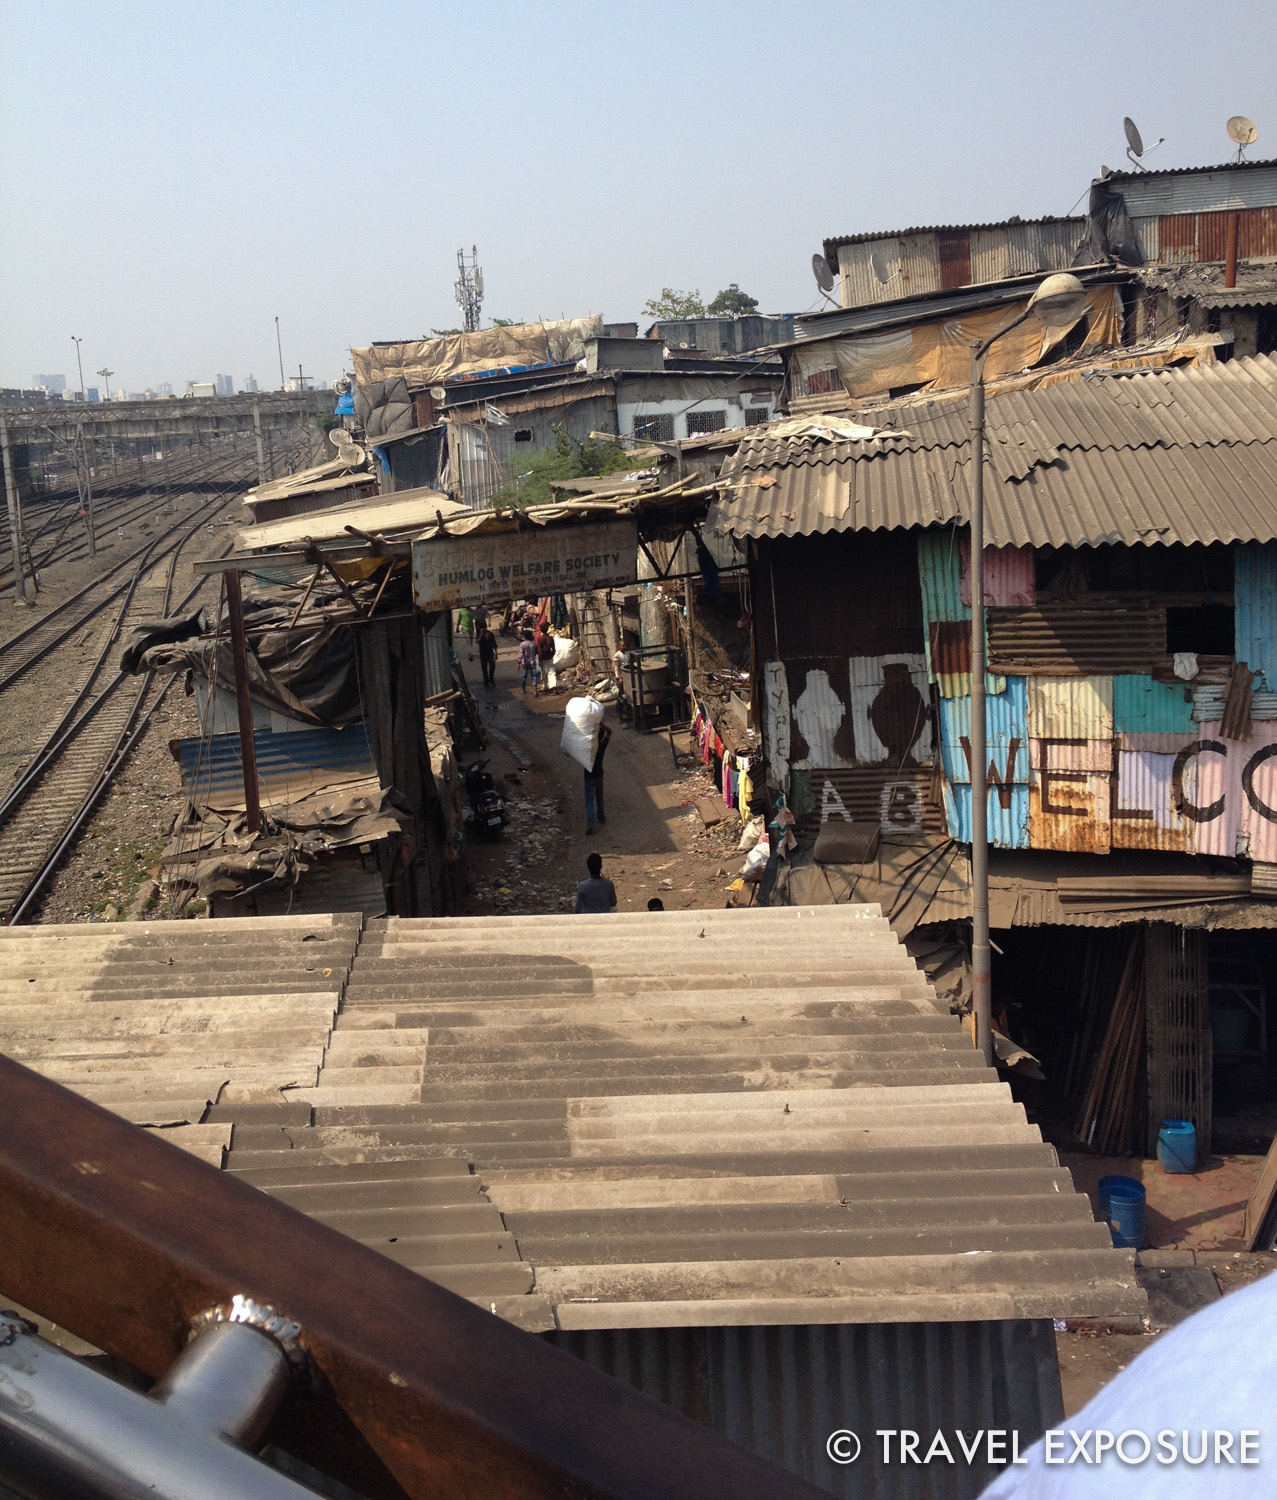 While in Mumbai, we spent an afternoon walking through the famed Dharavi slum via Reality Tours